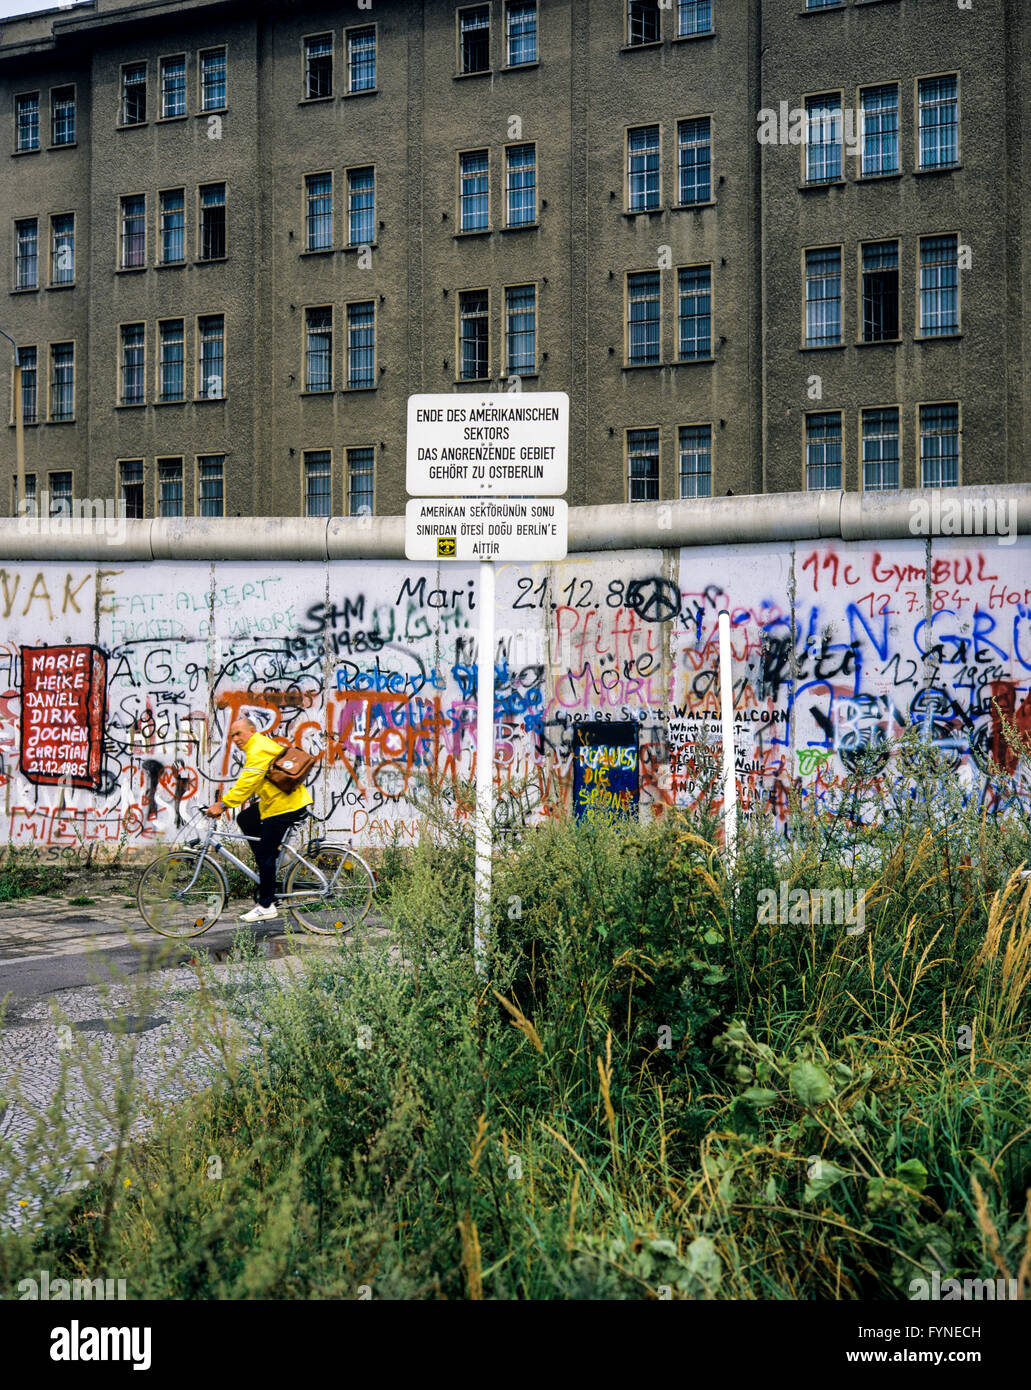 August 1986, Berlin Wall graffitis, warning sign for end of American sector, cyclist, East Berlin building, West - Stock Image